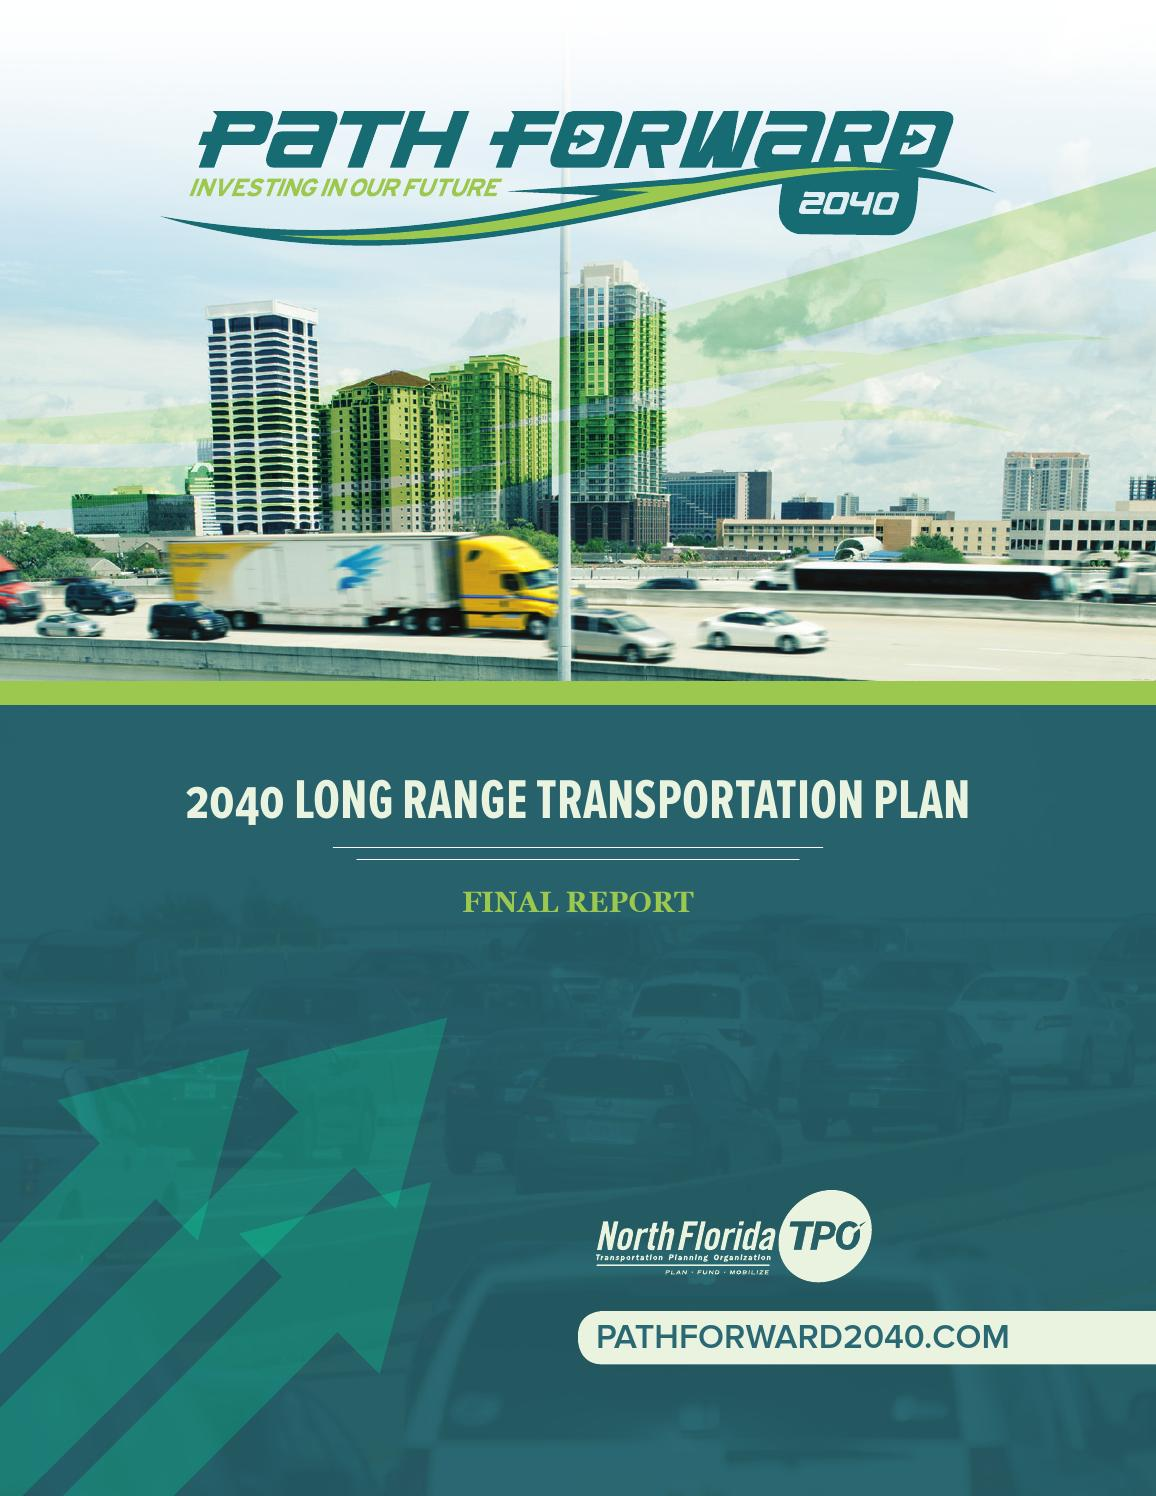 Manatee County School Calendar 2019-2016 2040 Long Range Transportation Plan Final Report by North Florida